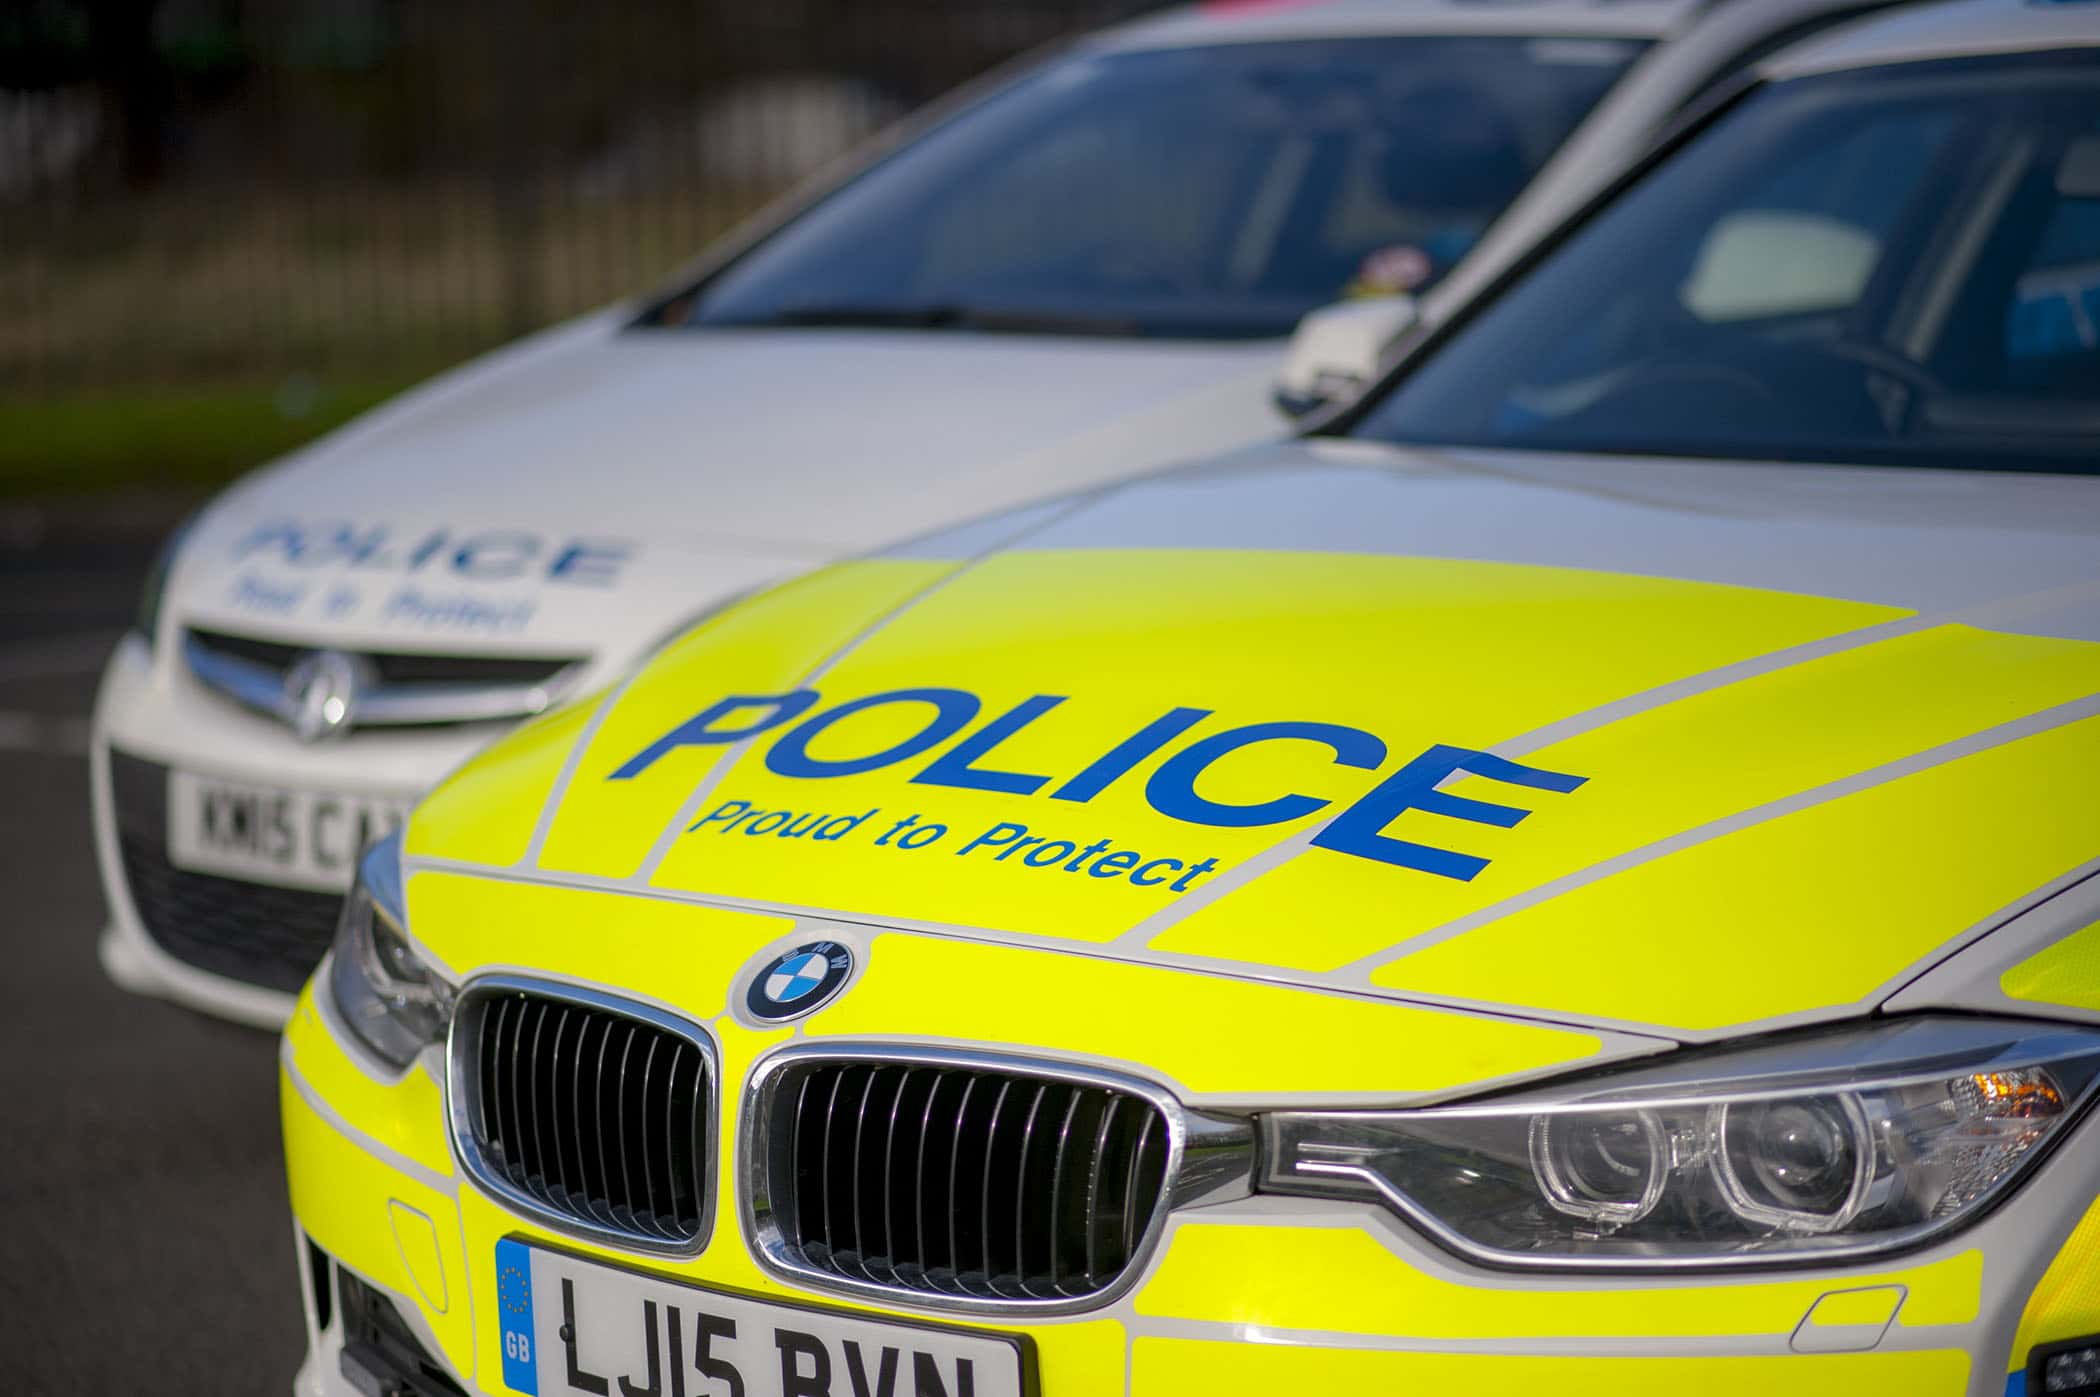 Attempted robbery on motorist in Sunderland